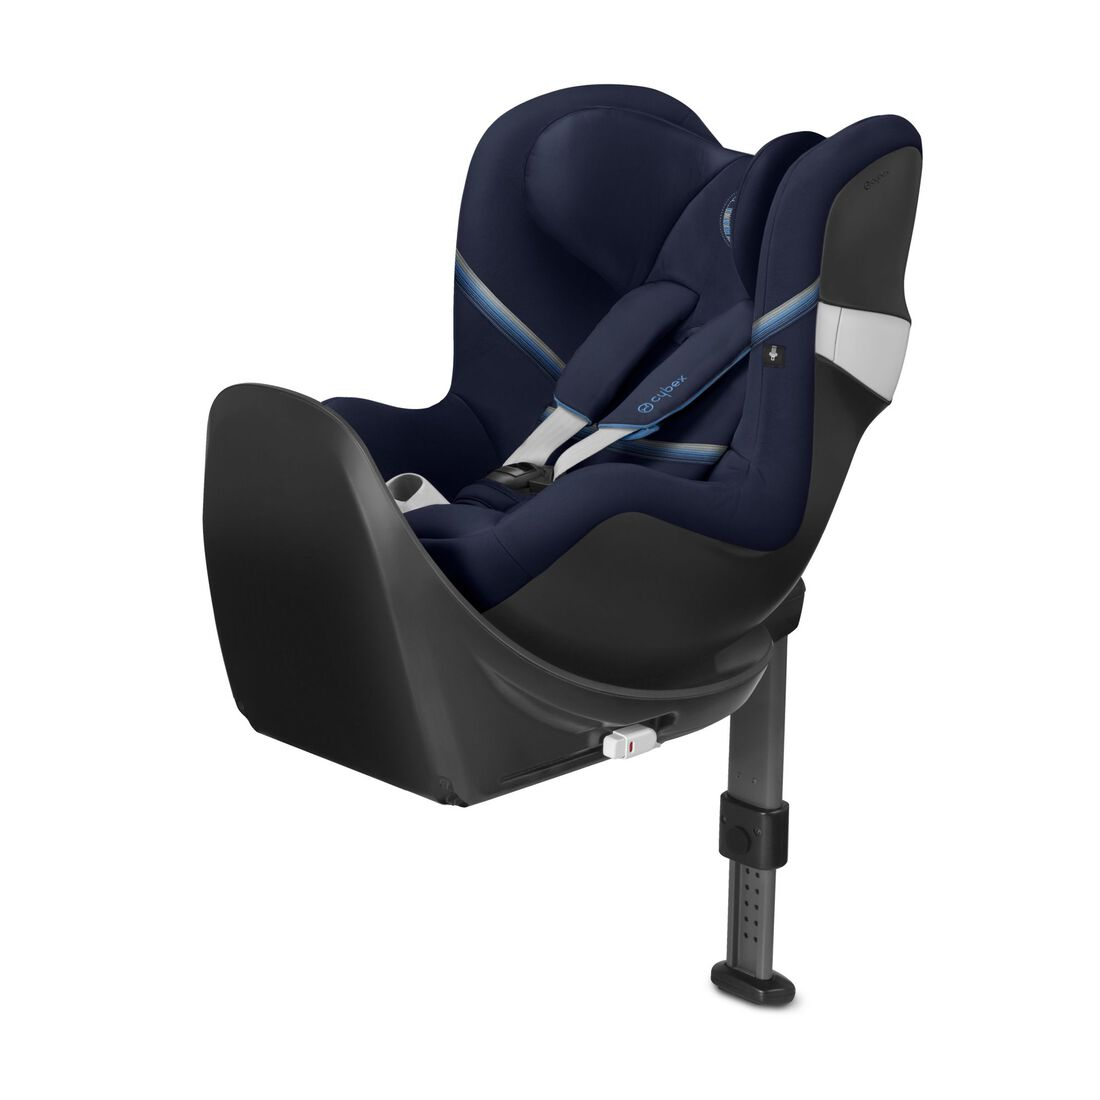 CYBEX Sirona M2 i-Size - Navy Blue in Navy Blue large image number 2